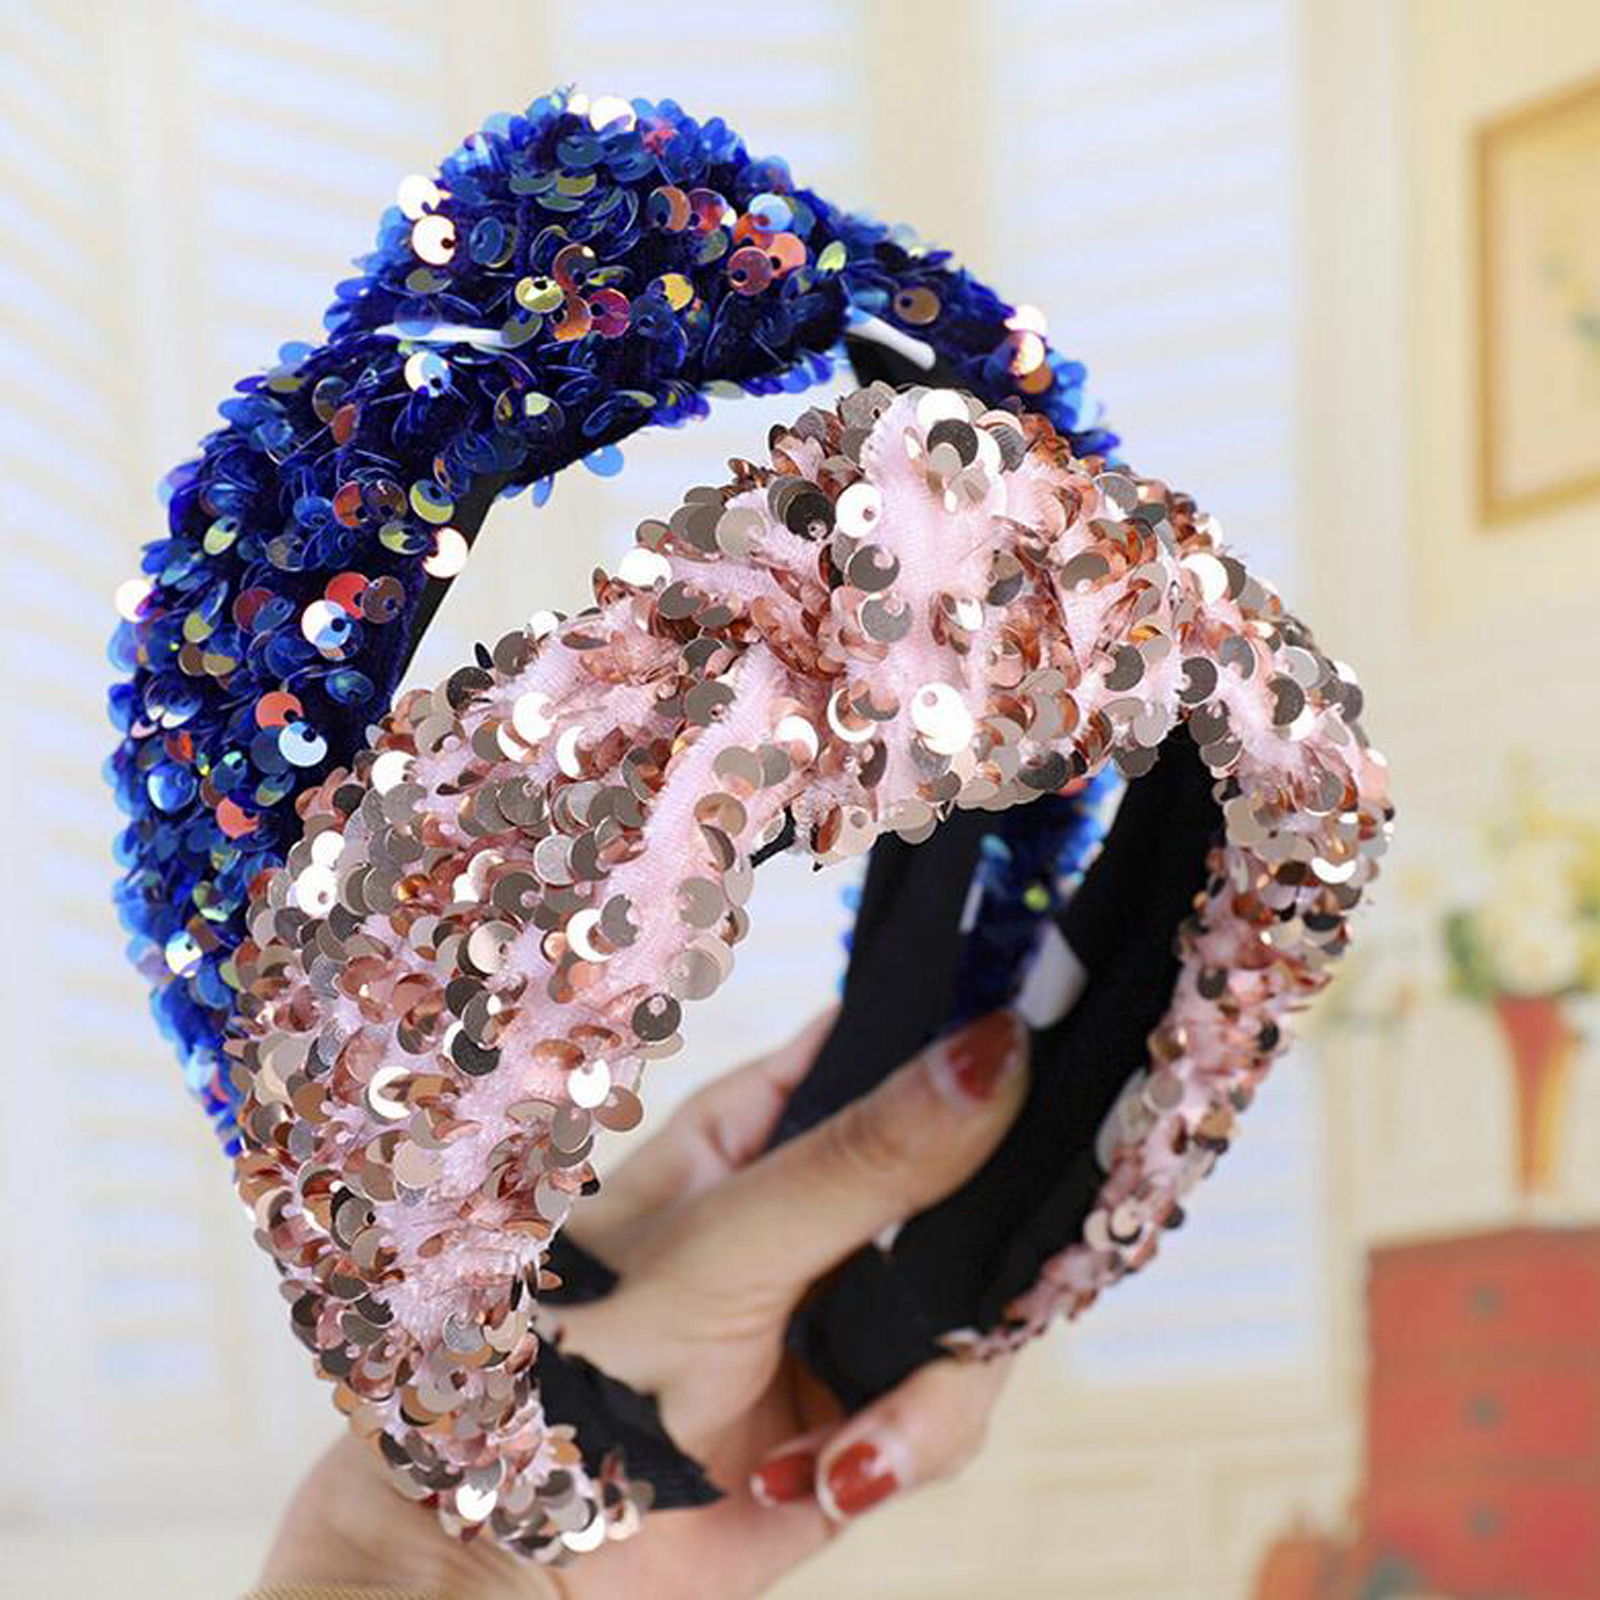 New Fashion Headband Adult Wide Side Hairband Women Shining Candy Plastic Hair Band Adult Center Knot Turban Hair Accessories